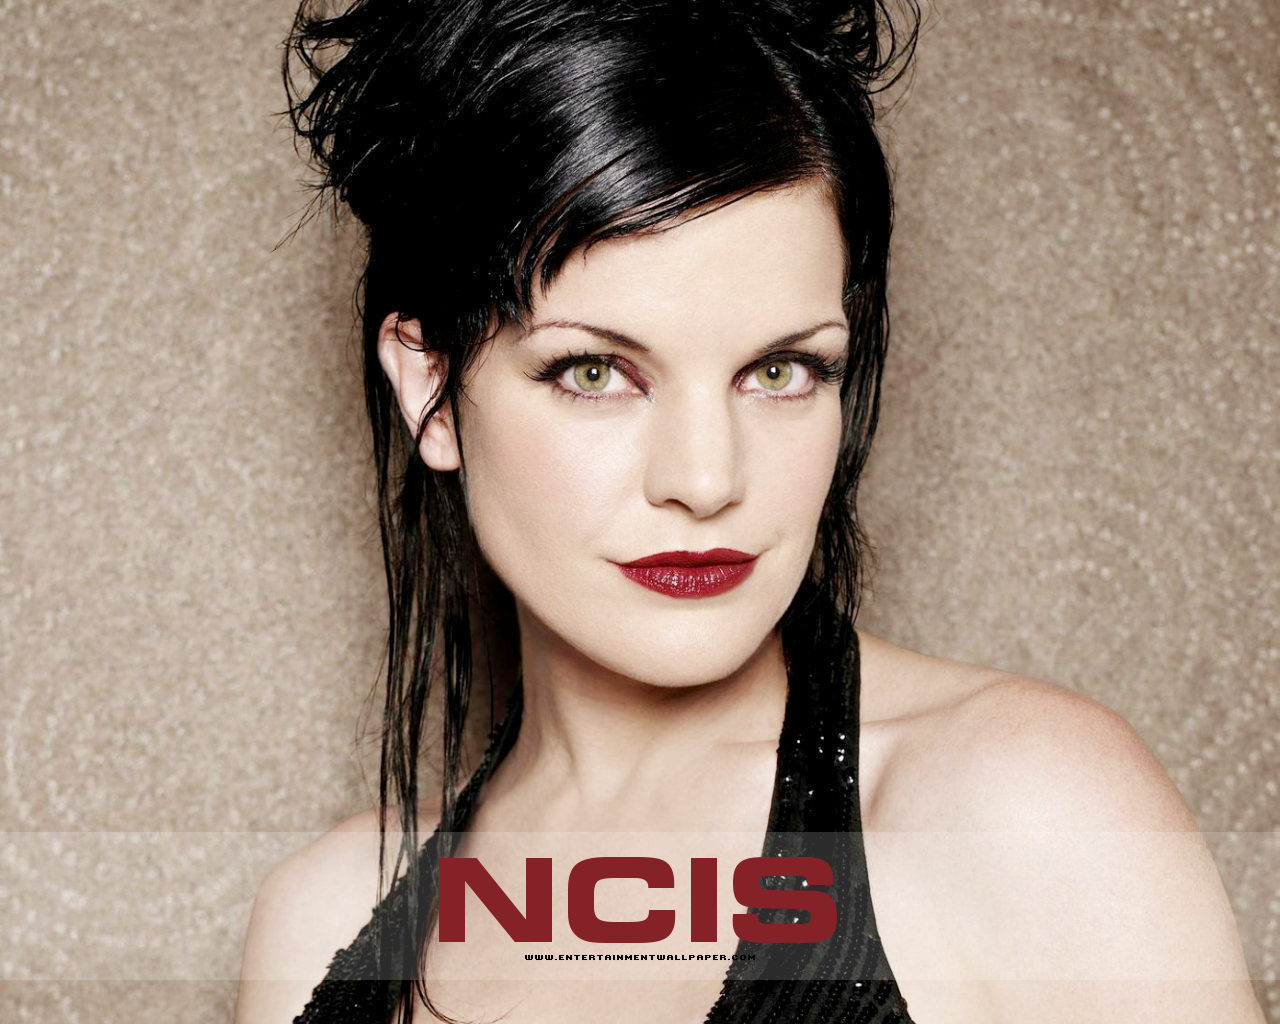 Abby From NCIS Tattoo